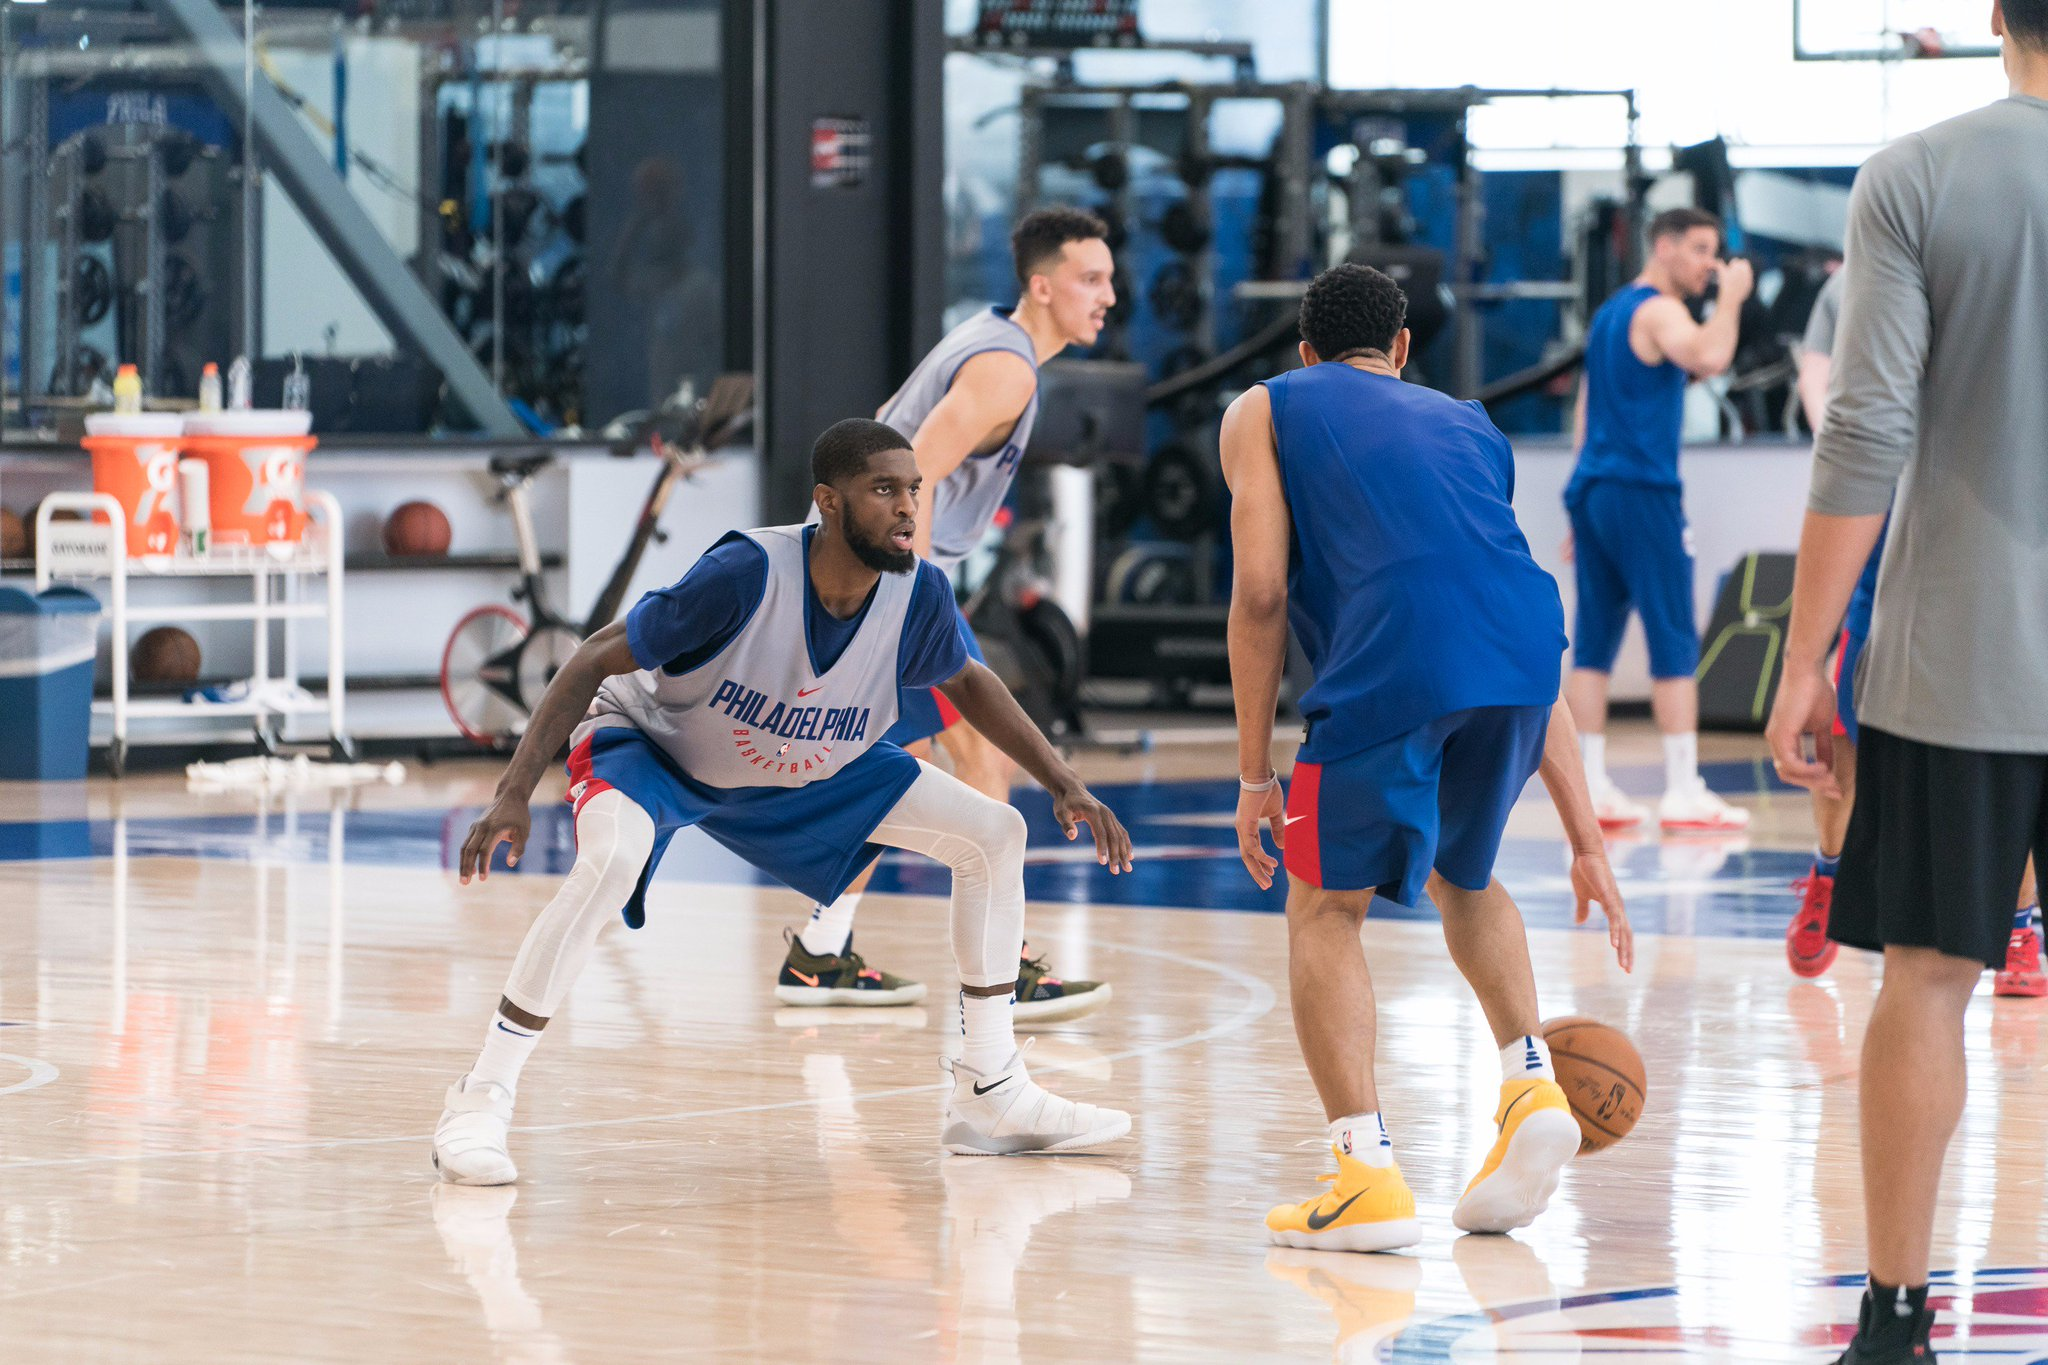 .@LaSalleMBB's @Bean_J20's hometown workout among pre-draft storylines.   �� » https://t.co/l2HTZi4W8i | #Summer76 https://t.co/doSnGsuWYS